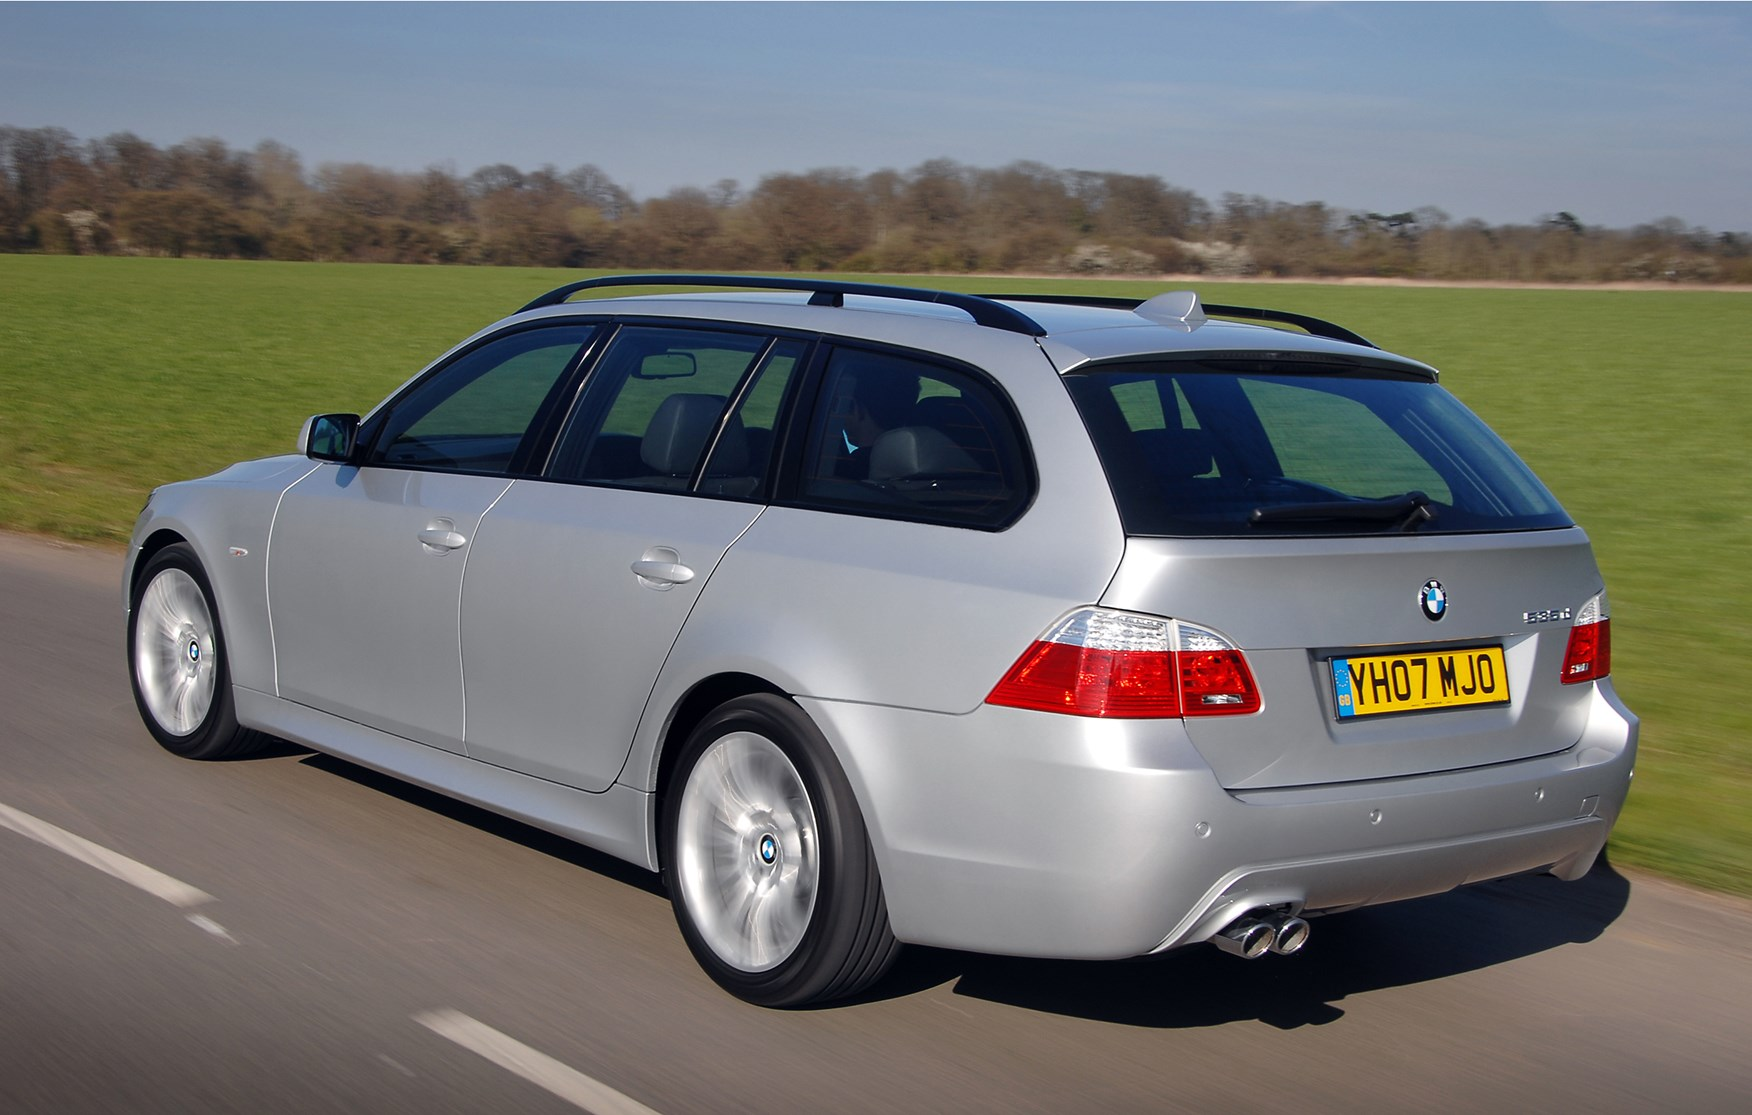 Pics photos bmw 520d estate bmw 520d touring review 2010 - How Much Is It To Insure